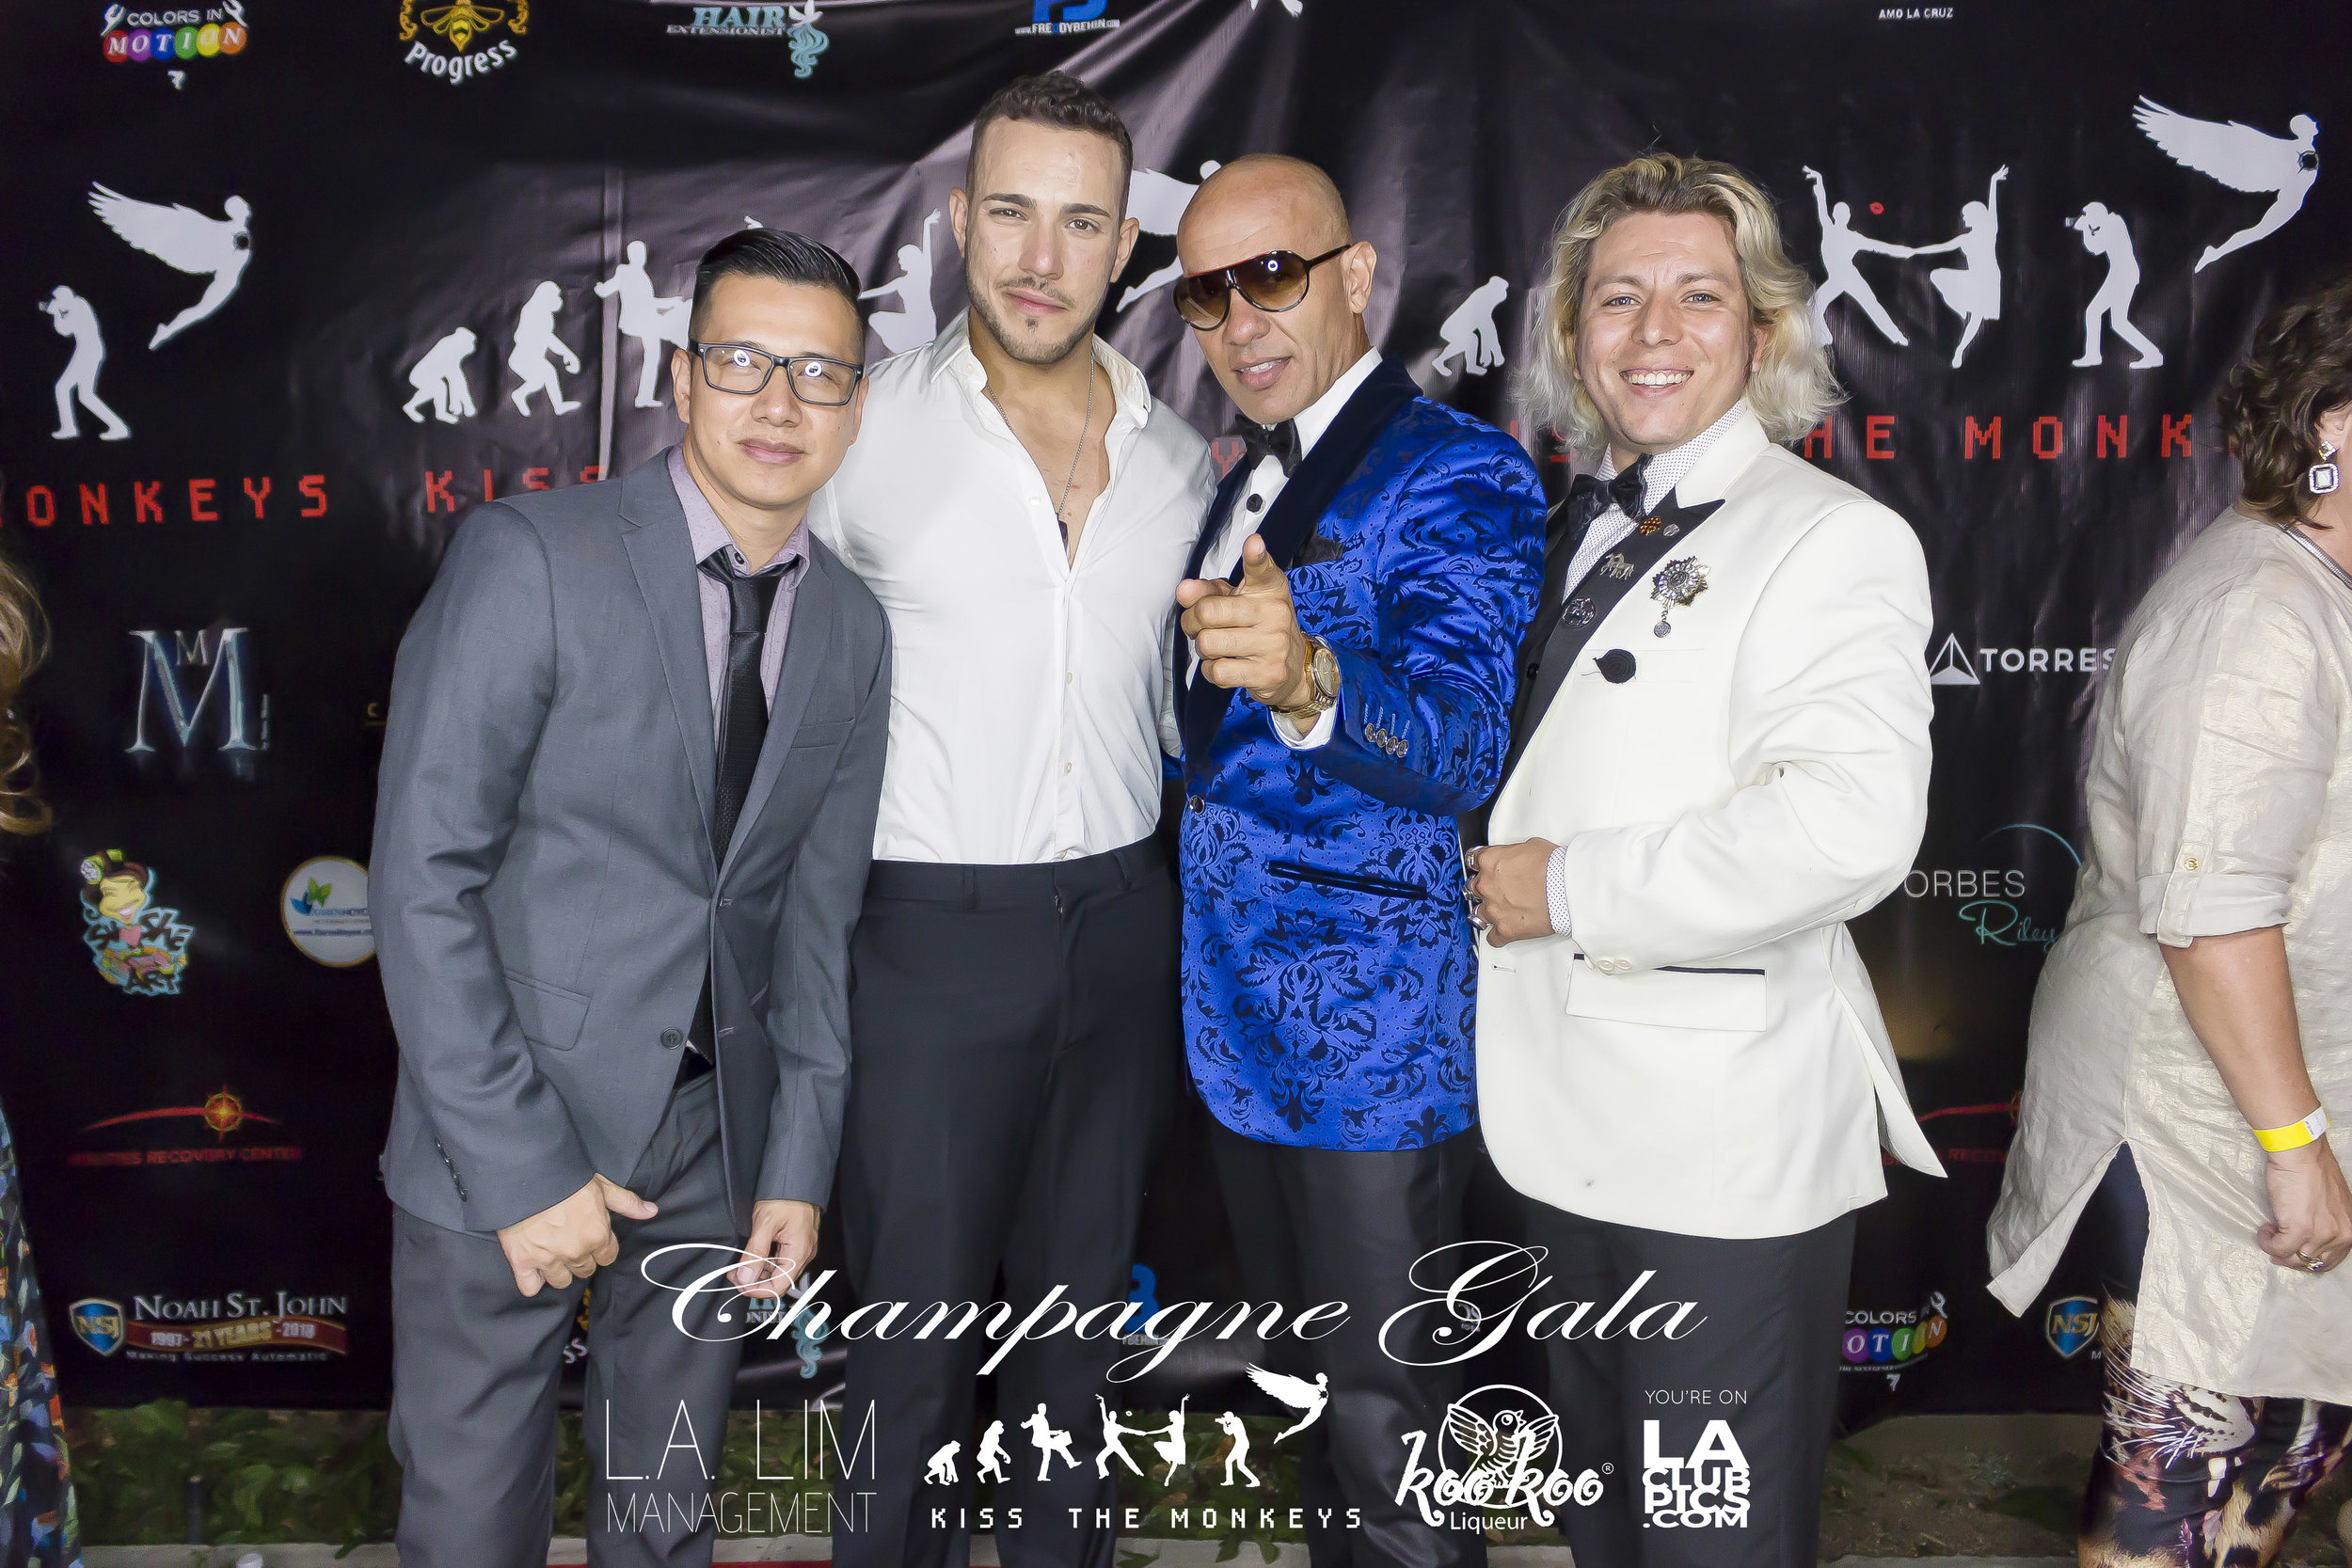 Kiss The Monkeys - Champagne Gala - 07-21-18_156.jpg